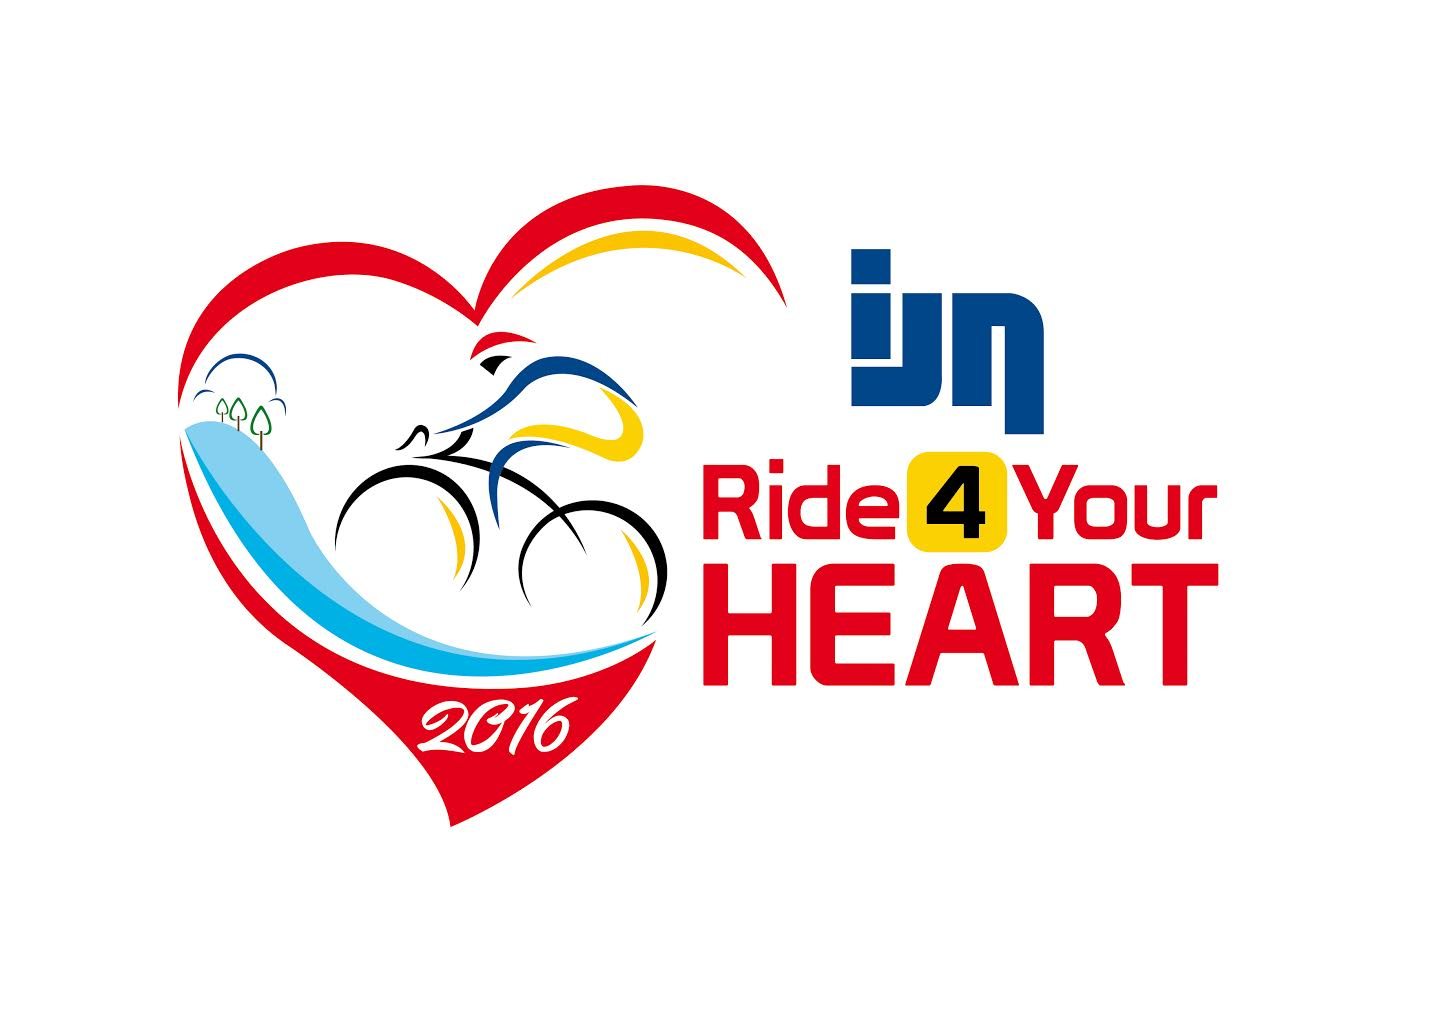 IJN Ride 4 Your Heart 2016